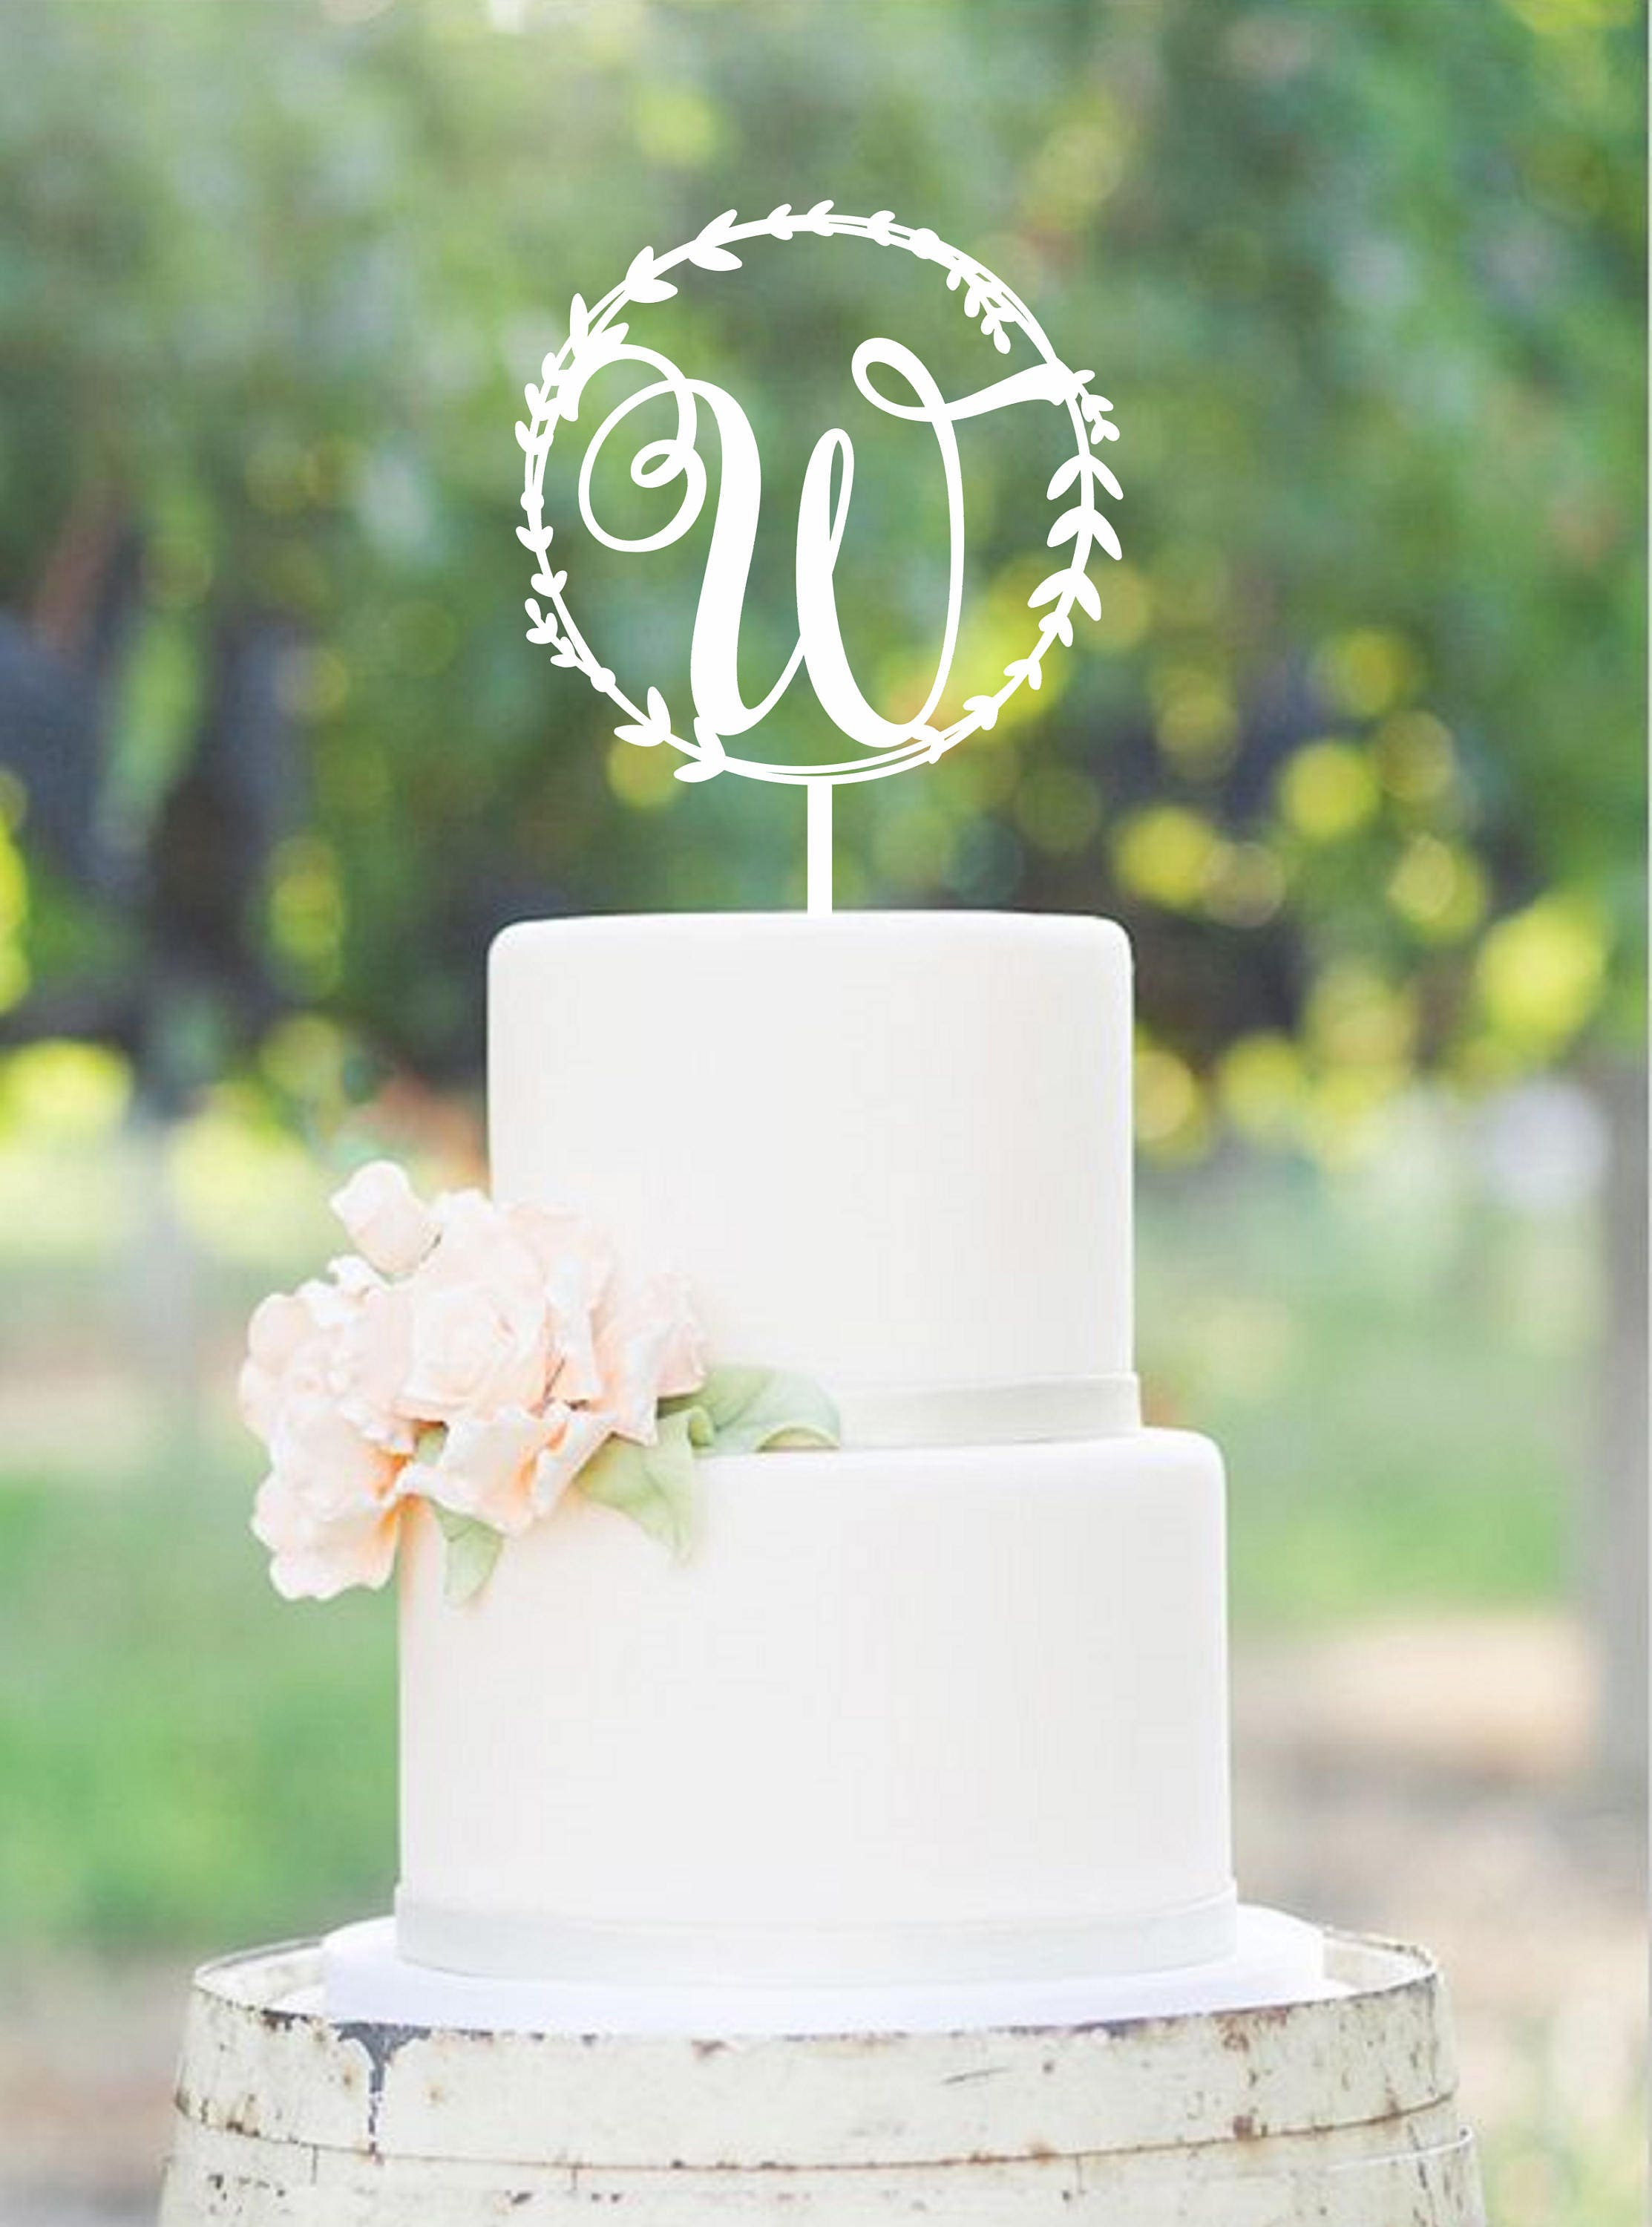 Wedding Cake Topper Wreath Initial Wood Monogram Wedding Cake Topper ...